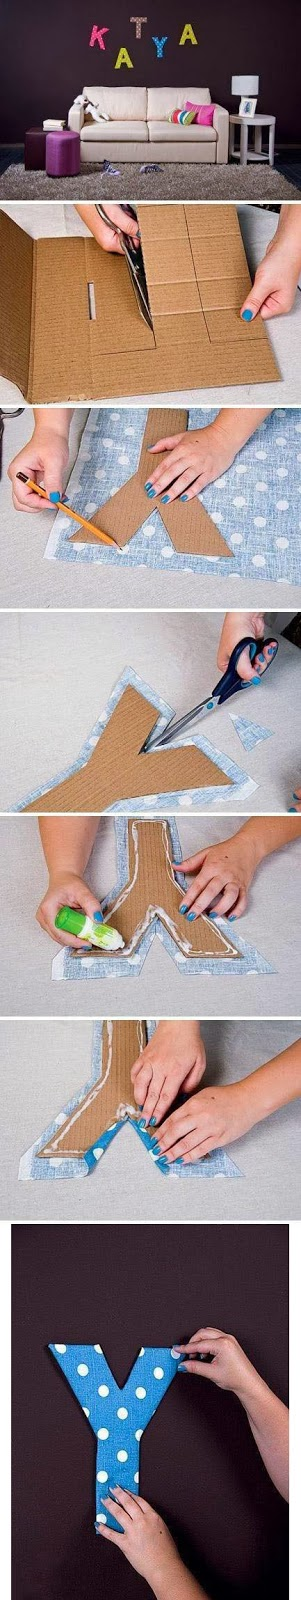 http://diy-projectss.blogspot.com.es/2013/07/fabric-and-cardboard-wall-letters-diy.html#.UfHuEoVGUy4